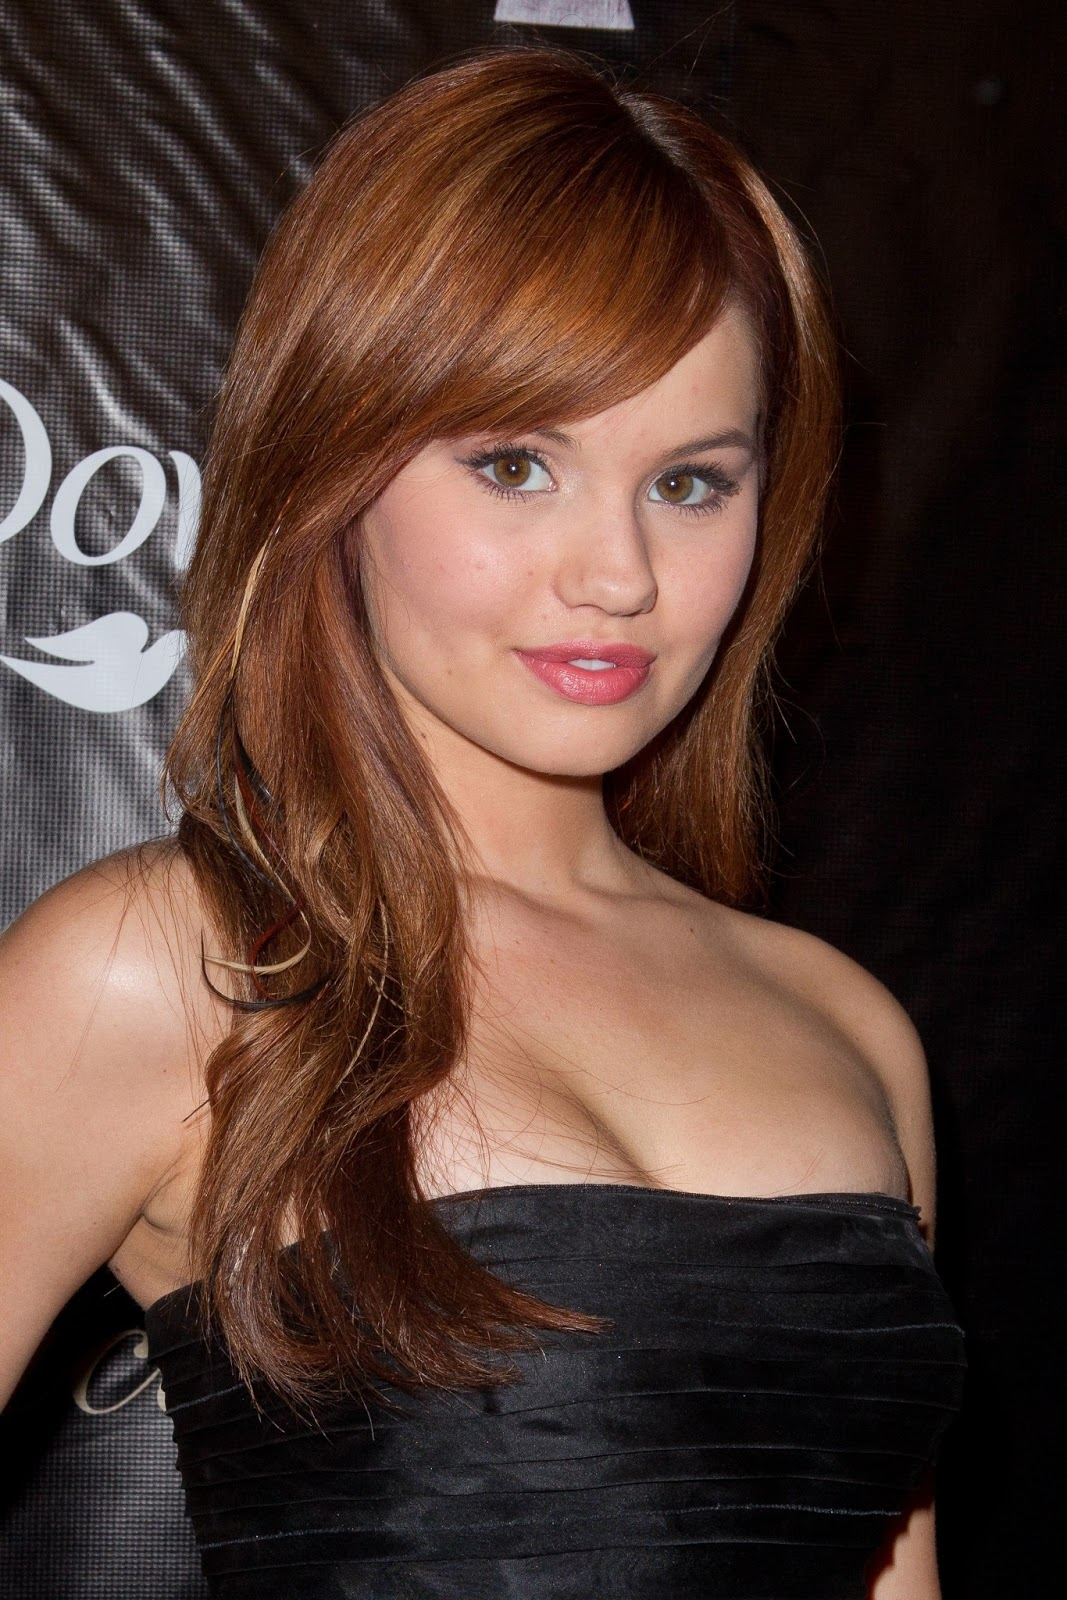 Debby Ryan Hd Pics, Debby Ryan Cute Stills, Debby Ryan Age, Debby Ryan